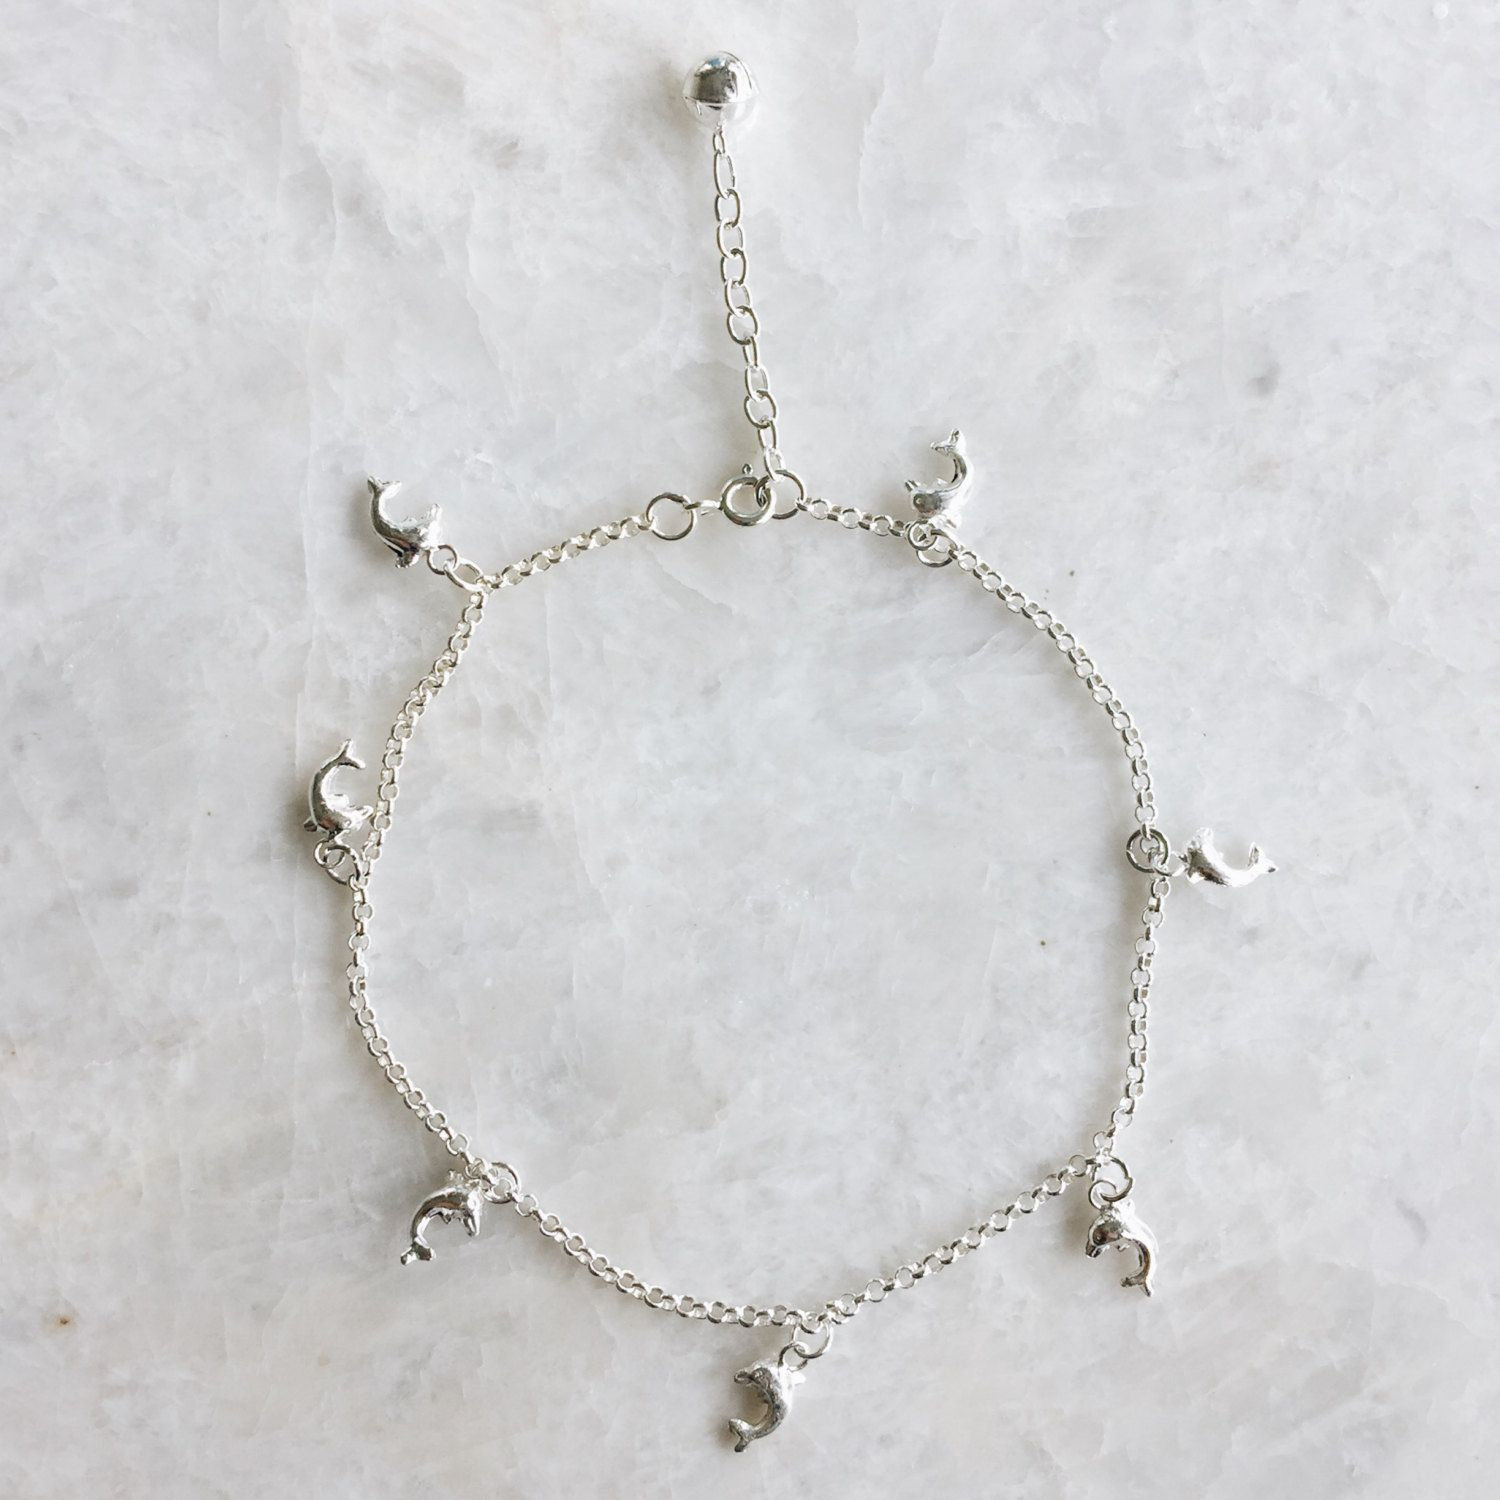 lovely available products anklet daisy silver rolo sterling model bracelets and adornment jewelry w in chain wholesale collections bracelet anklets with lengths faceted bar photo beads ankle round enamel charm